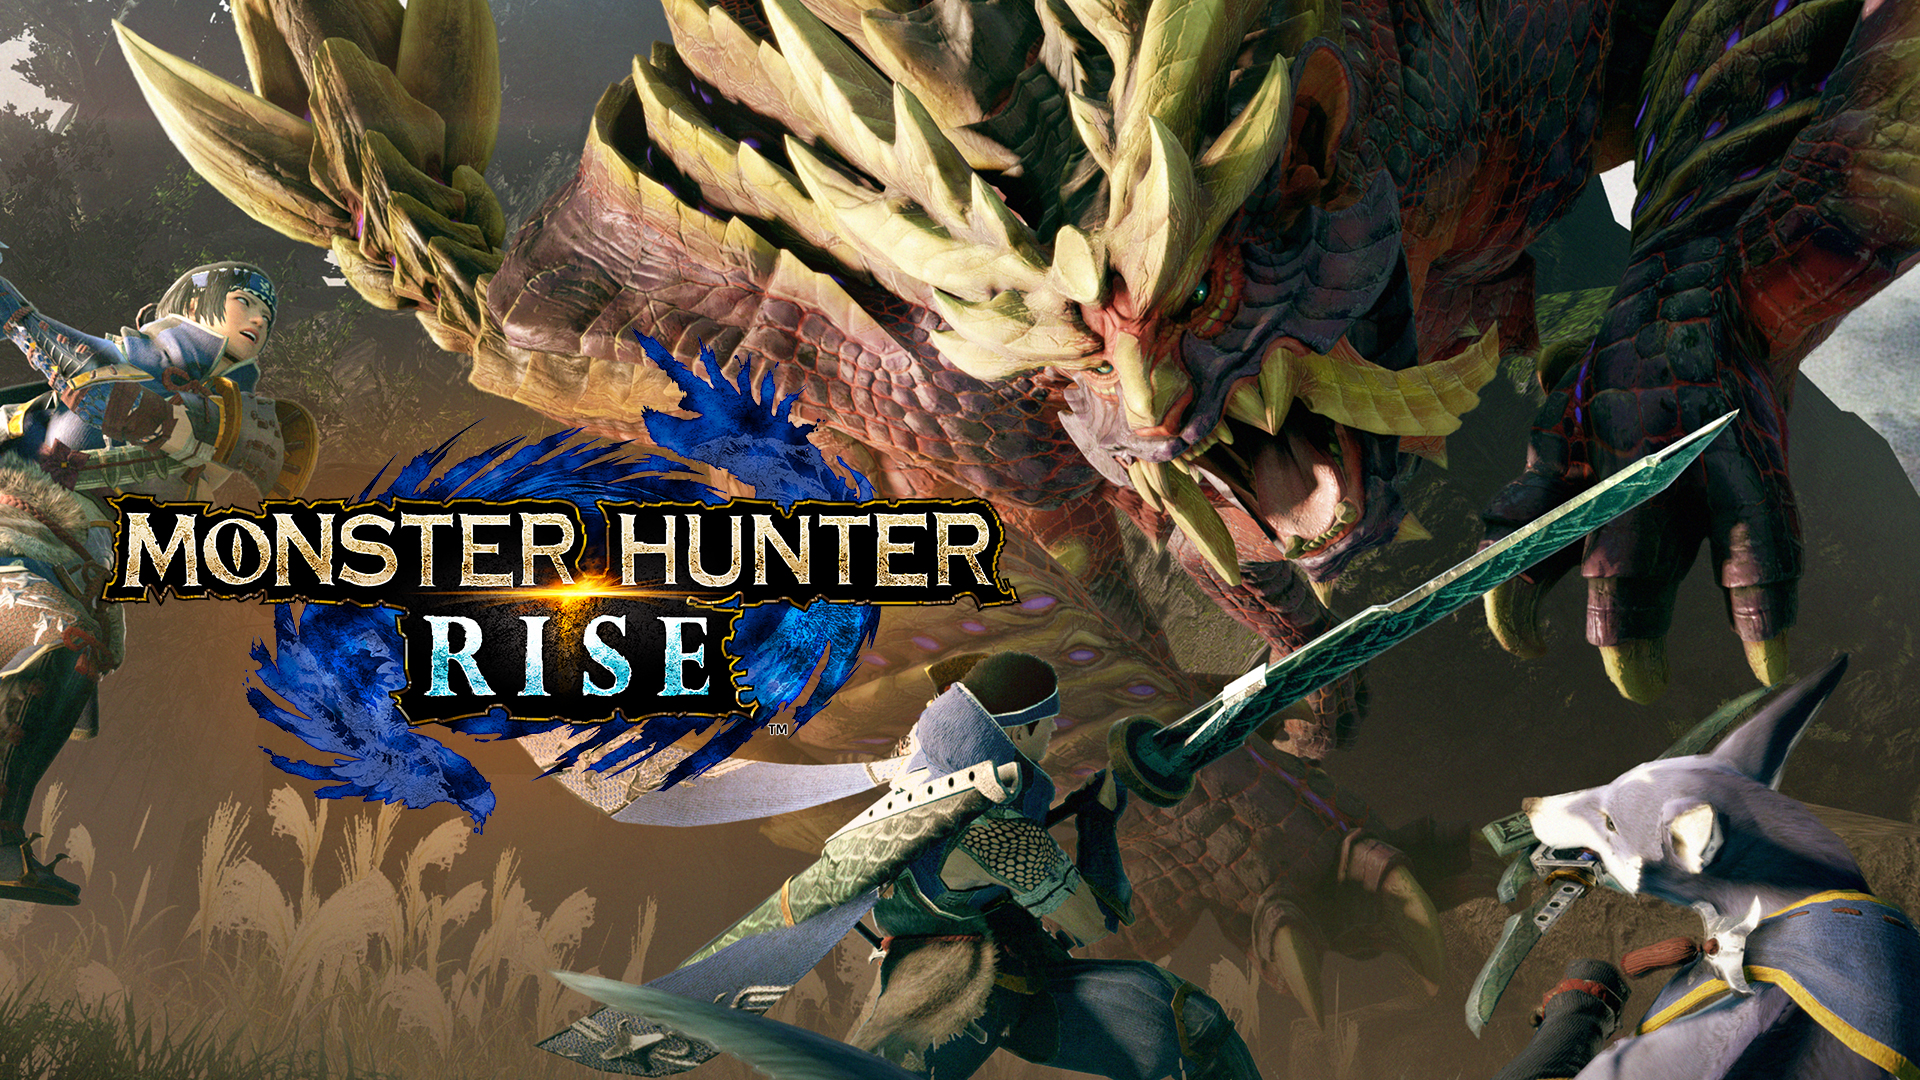 4th place: Monster Hunter Rise